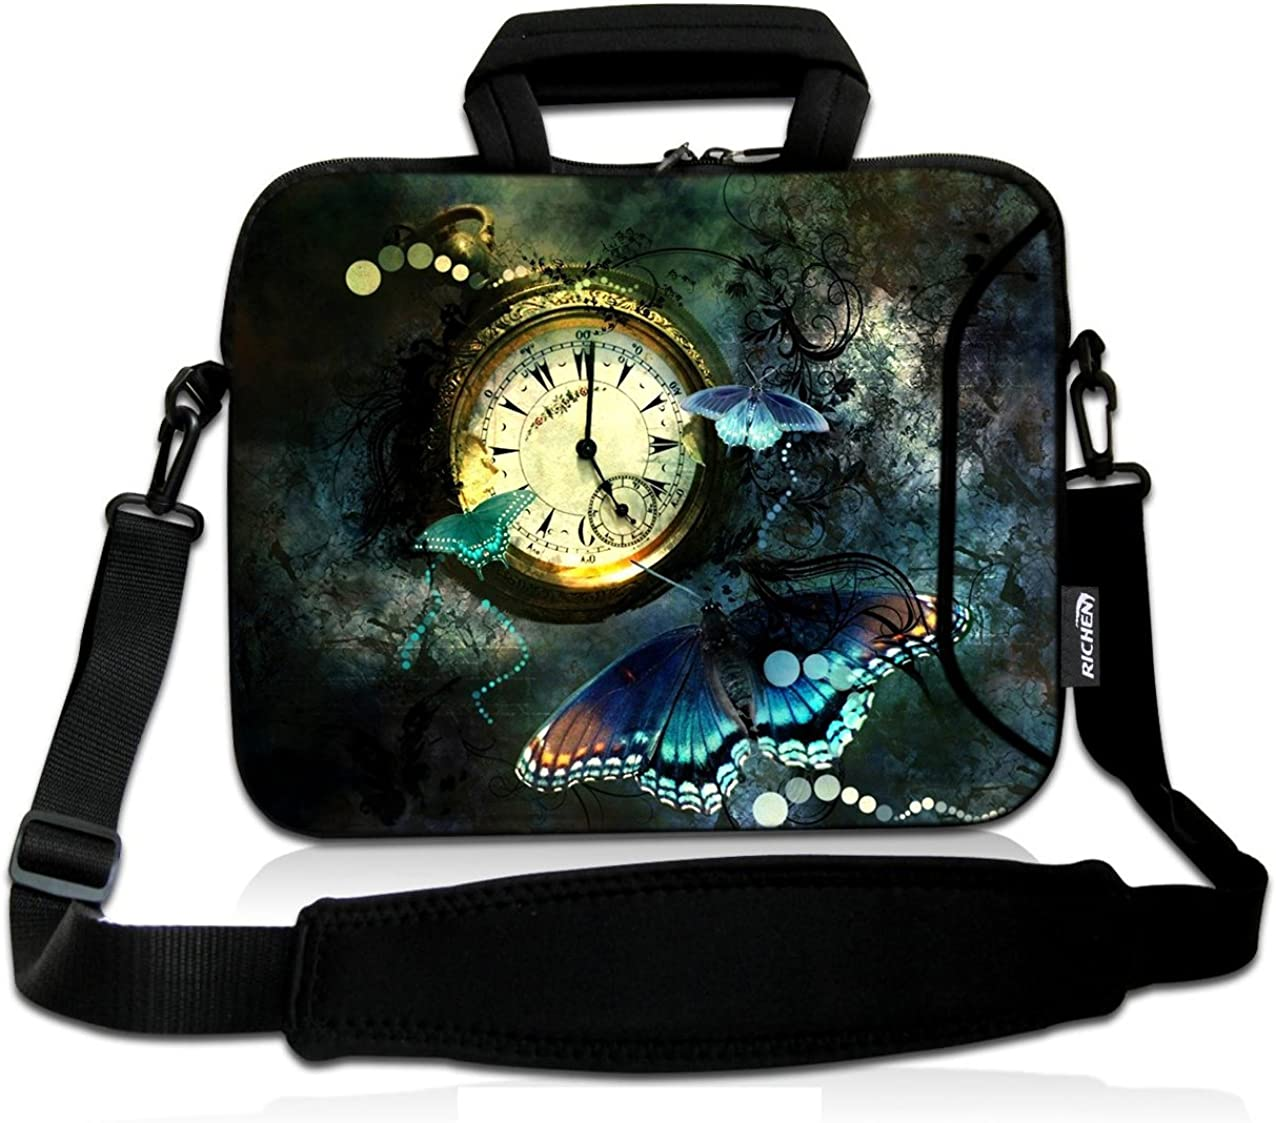 RICHEN 17 inch Laptop Shoulder Bag Carrying Case with Handle Fits 15.6/16/17/17.3/17.4 inch Laptop Notebook